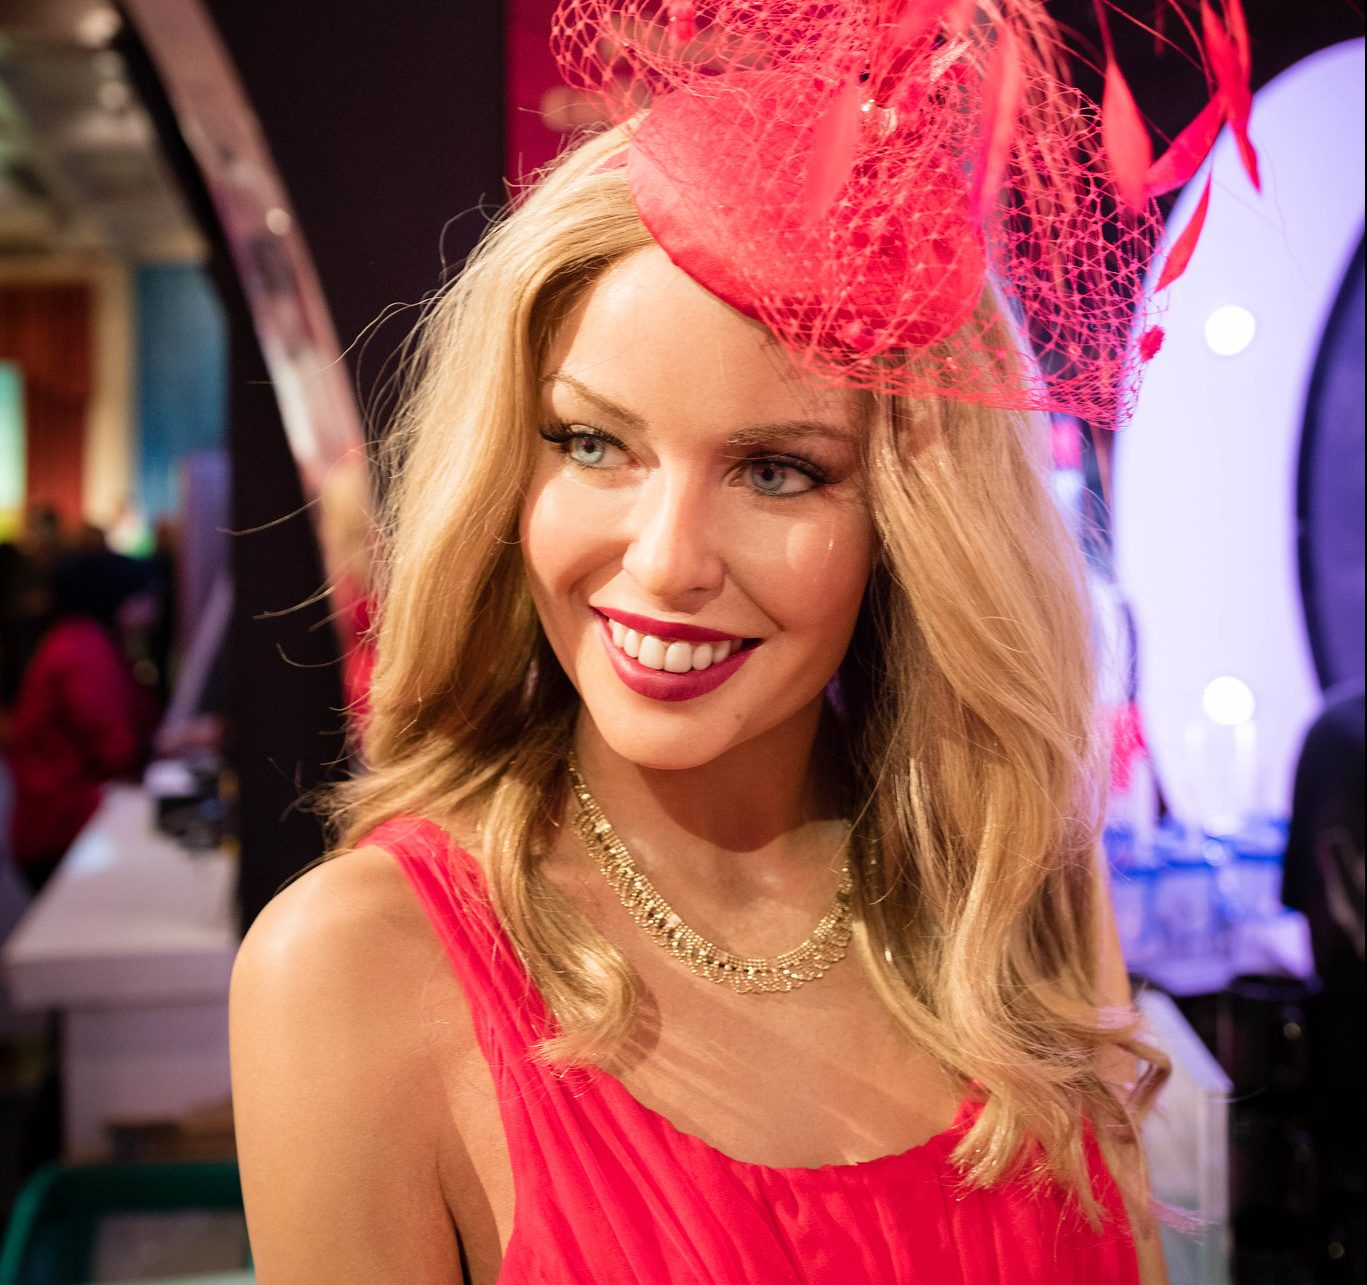 34537332145 95348facc3 k e1616509215494 10 Things You Probably Didn't Know About Kylie Minogue